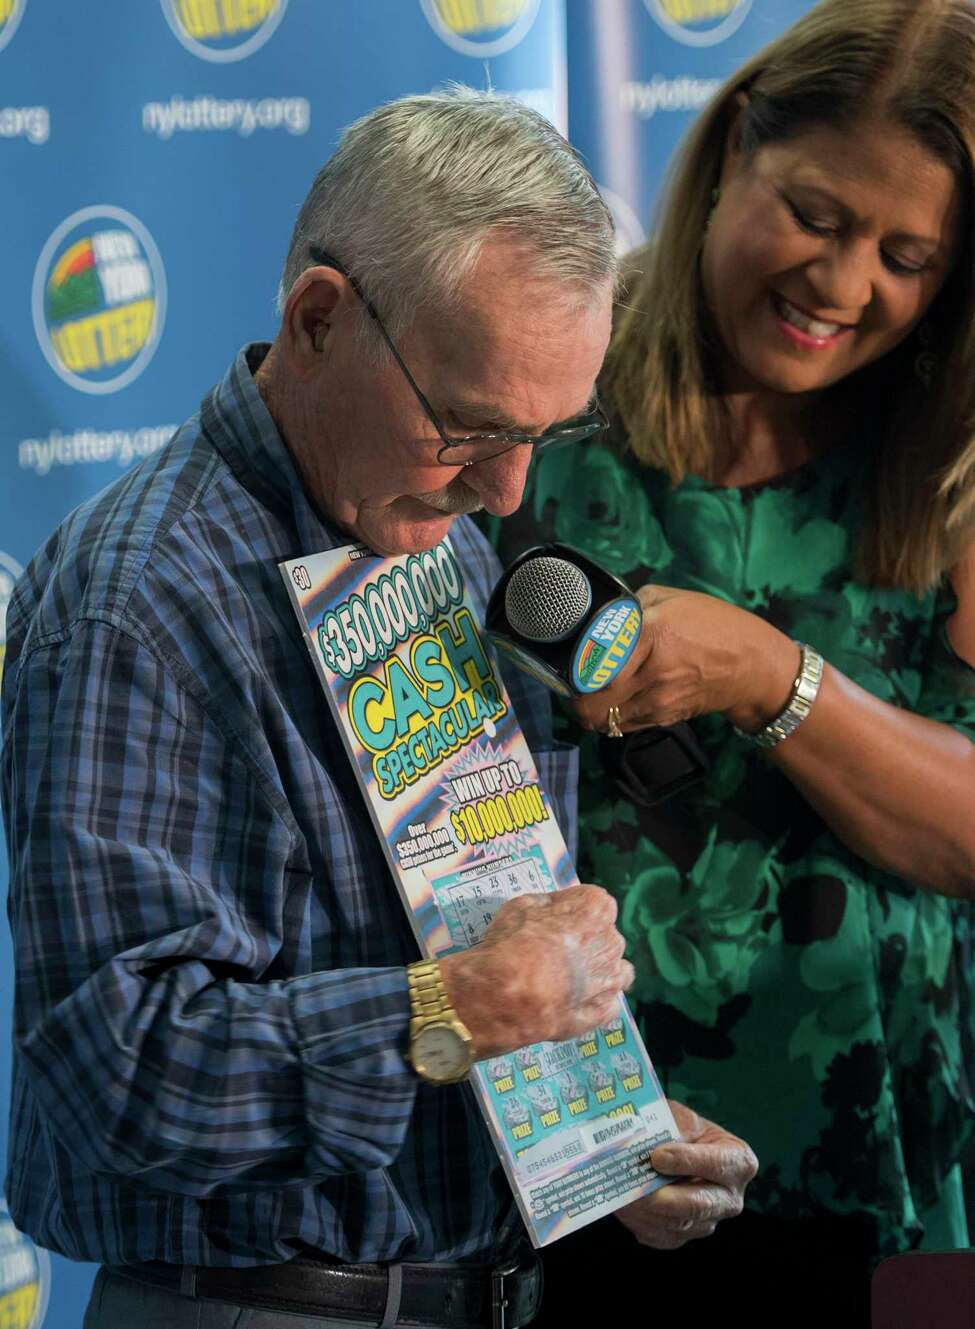 $10 million scratch off winner 73-year-old Dale Farrand of Fort Edward explains how he scratched off his card while being interviewed by New York Lottery's own Yolanda Vega at a press conference at the Lottery Headquarters Monday Sept. 10, 2018 in Schenectady, N.Y. (Skip Dickstein/Times Union)